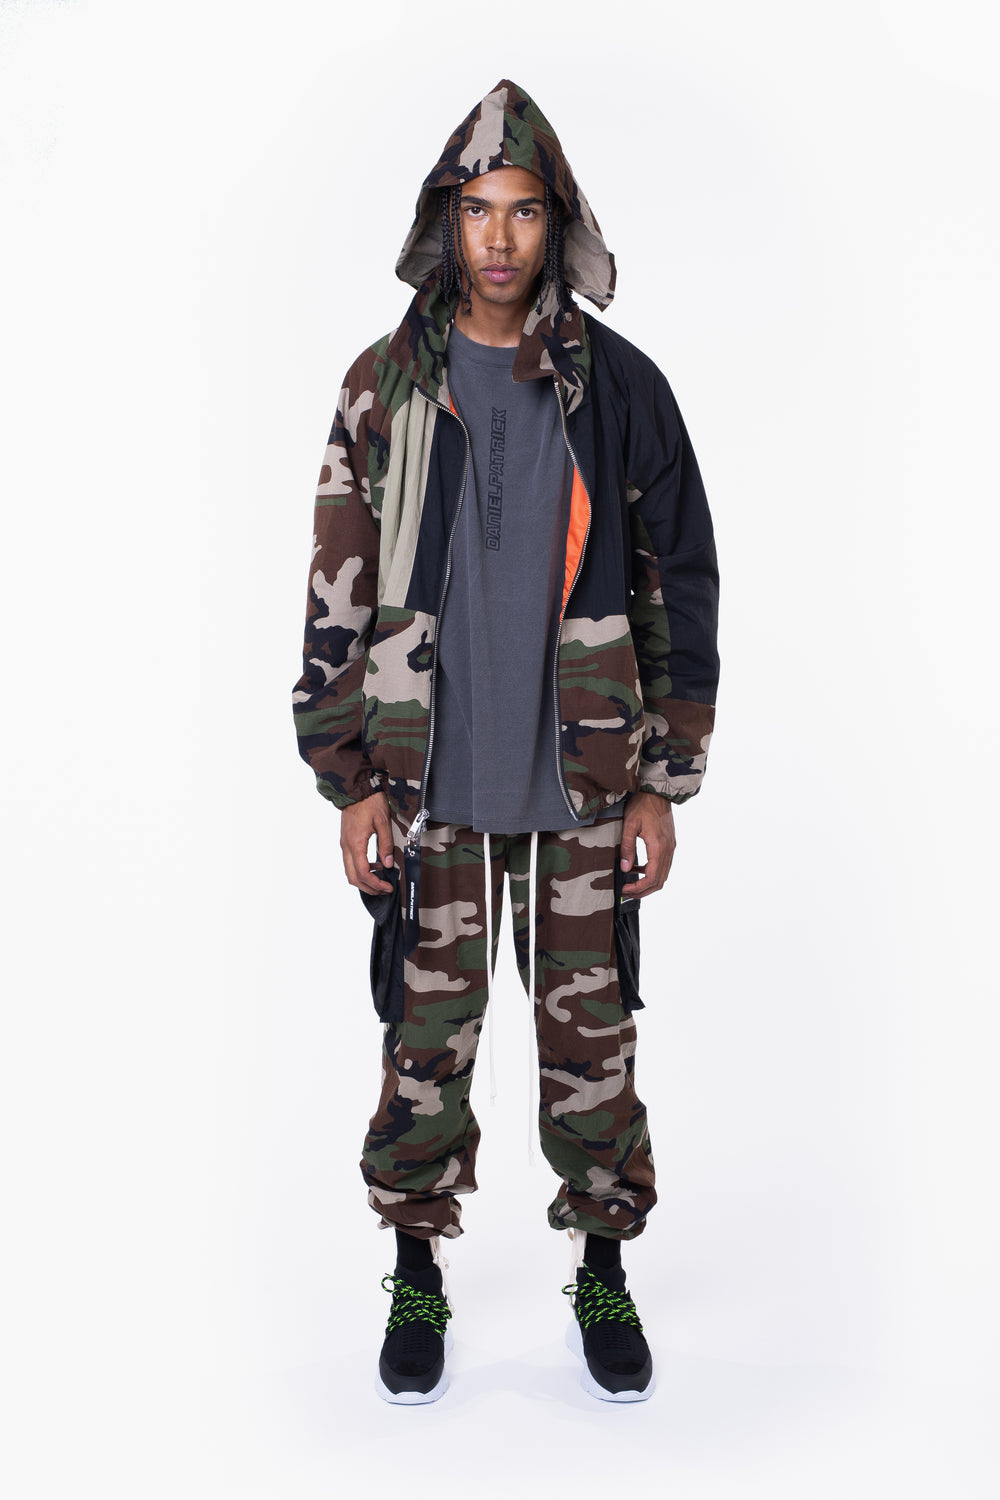 M93 track jacket / camo + smog grey + black